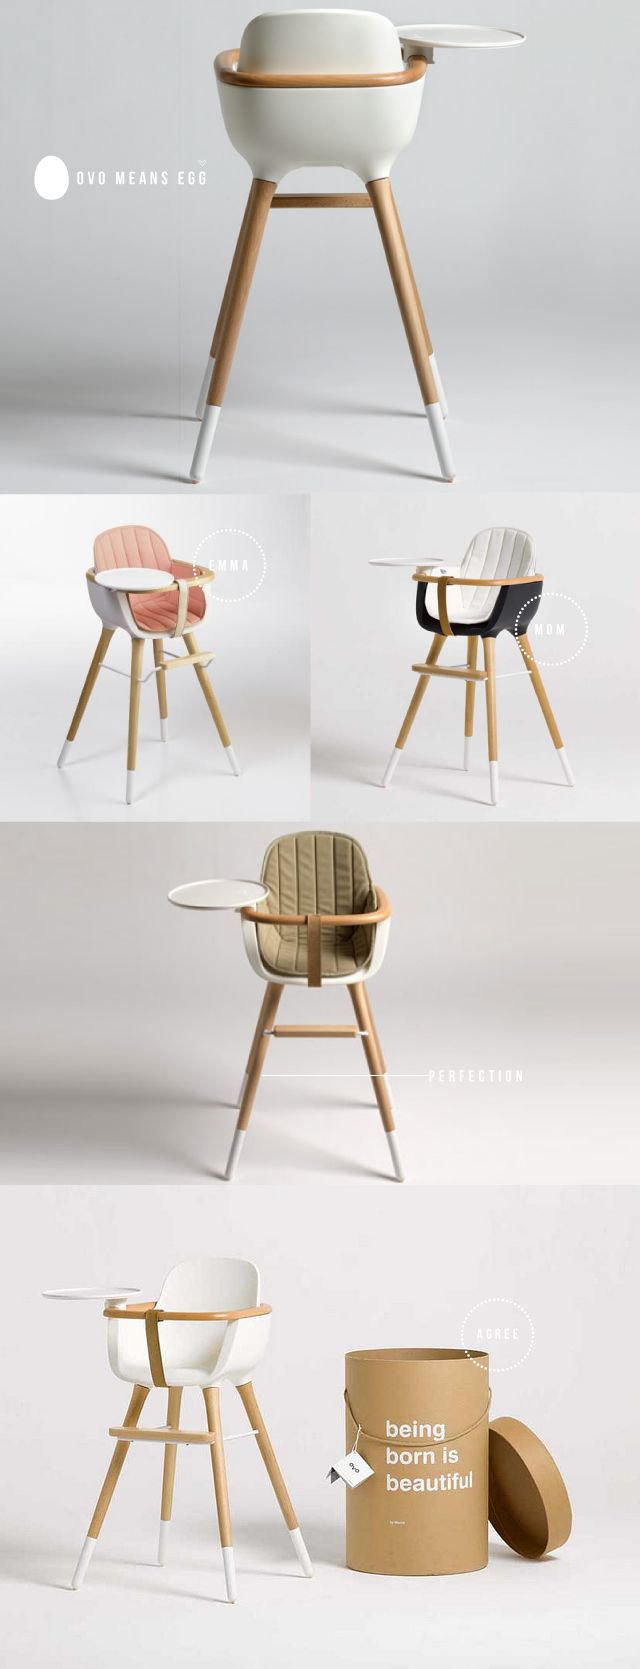 high chair design for kids